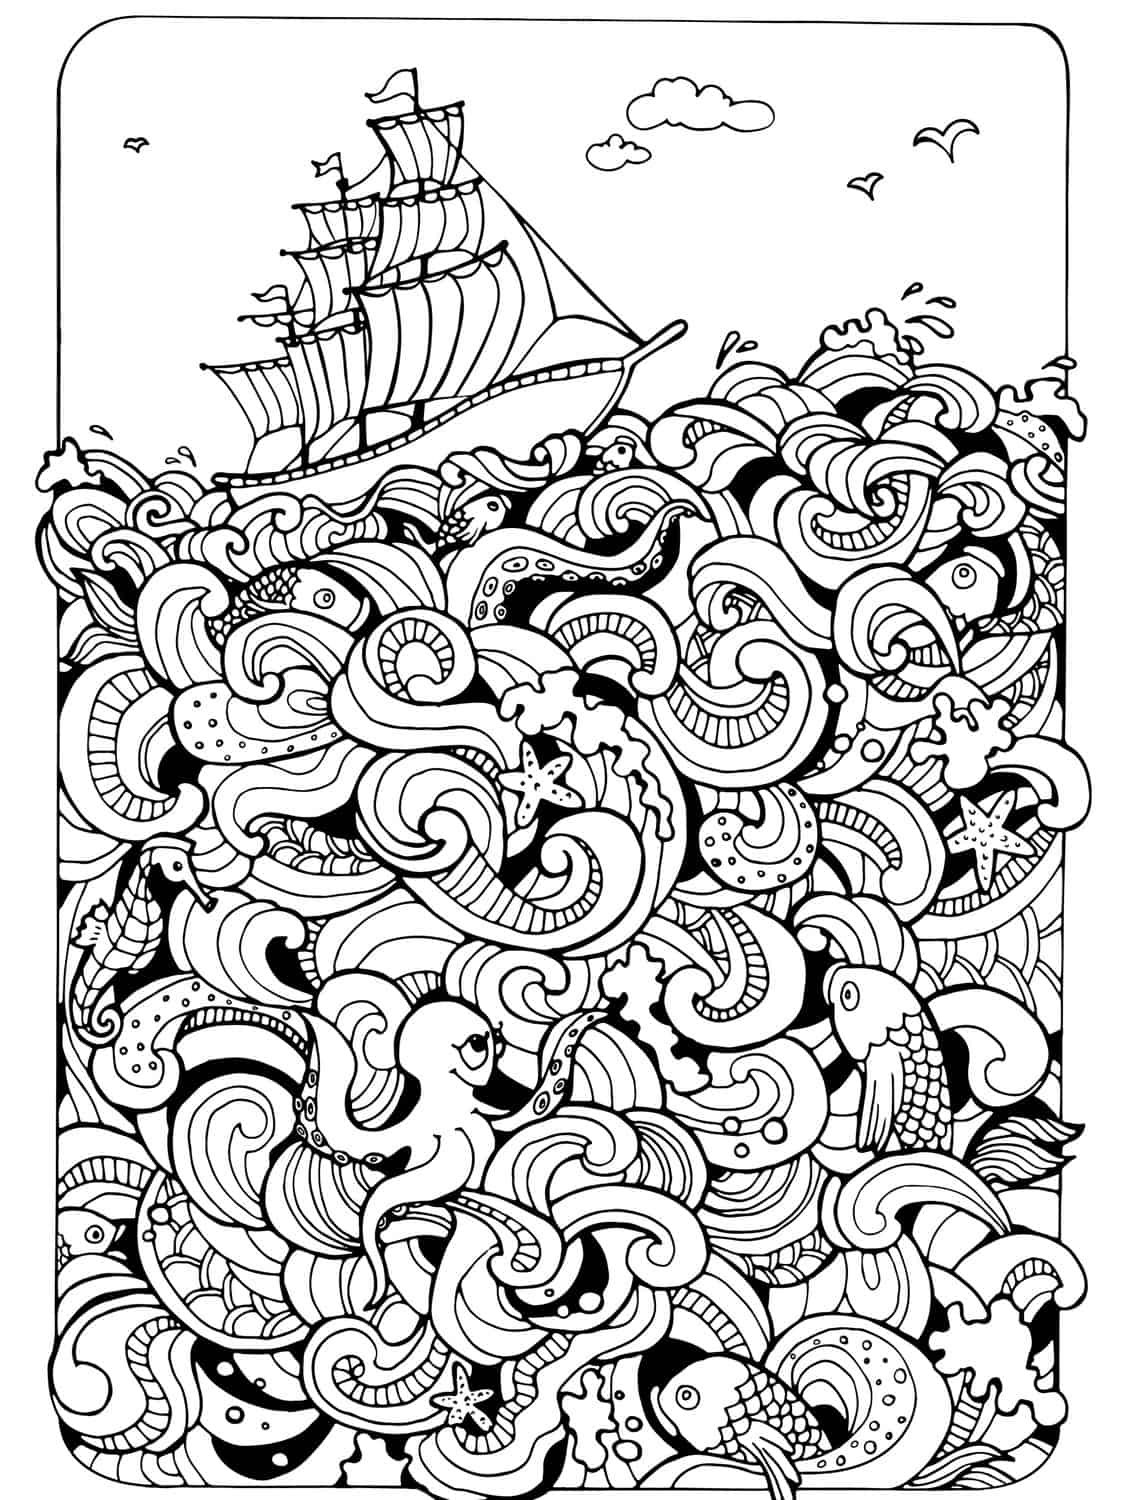 18 absurdly whimsical coloring pages page 3 of 20 nerdy